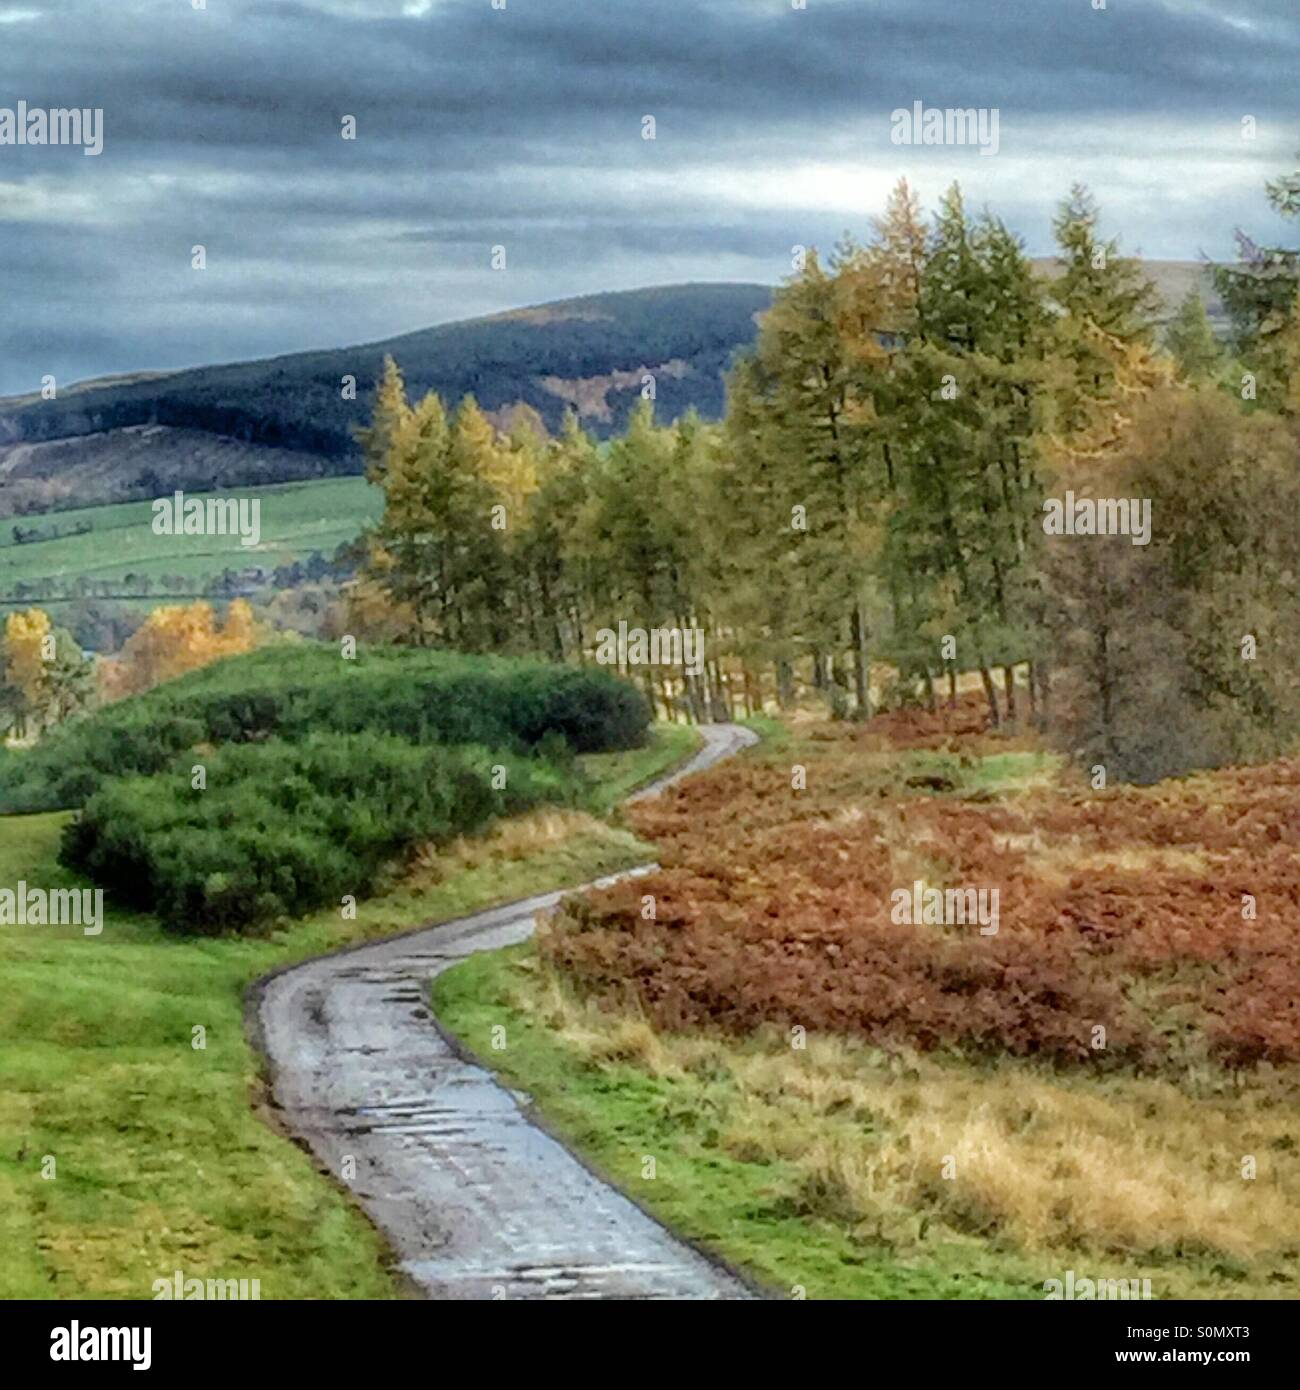 Rainy day walk in Perthshire - Stock Image